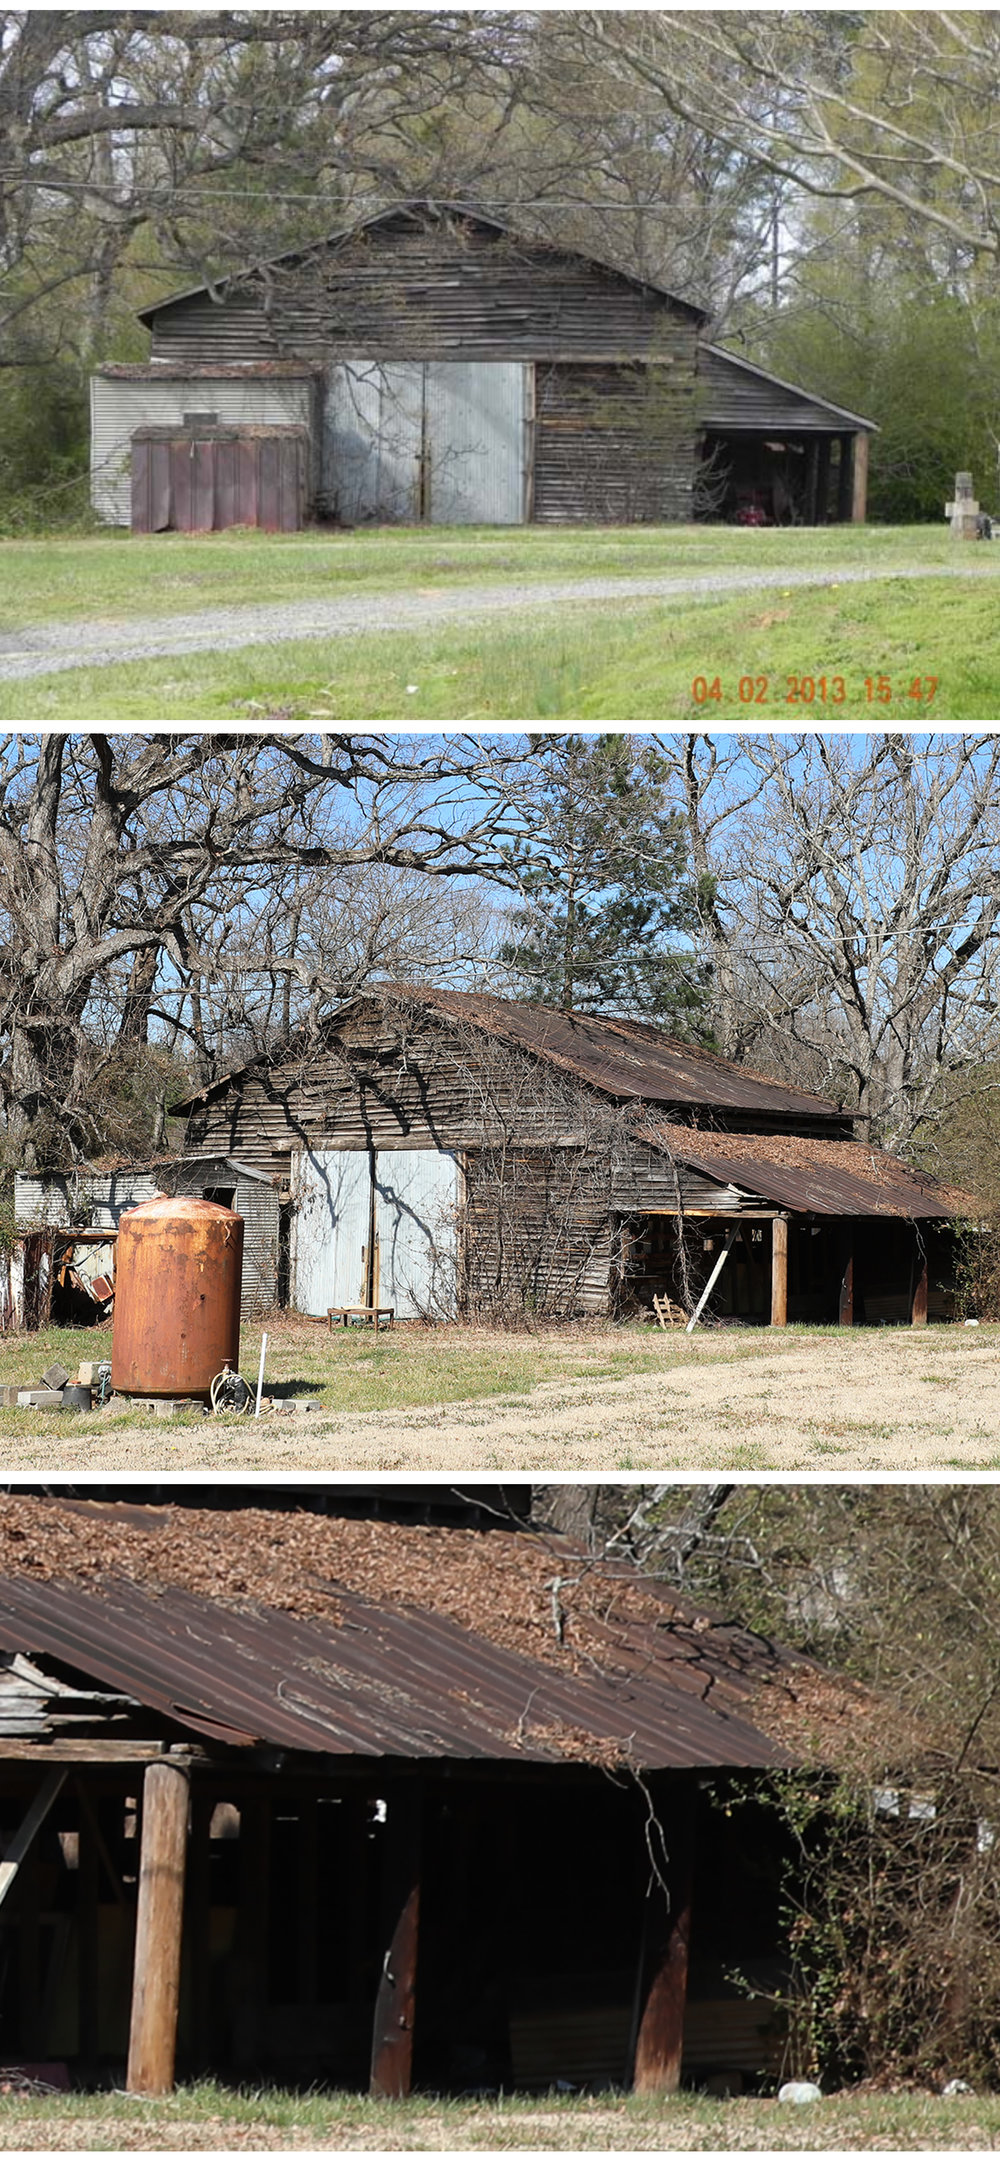 The Overcash Barn: Presumably built circa 1921, at the same time as the home next to it. The barn sits on a parcel rezoned in 2018 (application 2017-663) and now owned by Willton-BB Matthews Owner LLC. The property was approved to become a 350 unit multifamily development. -